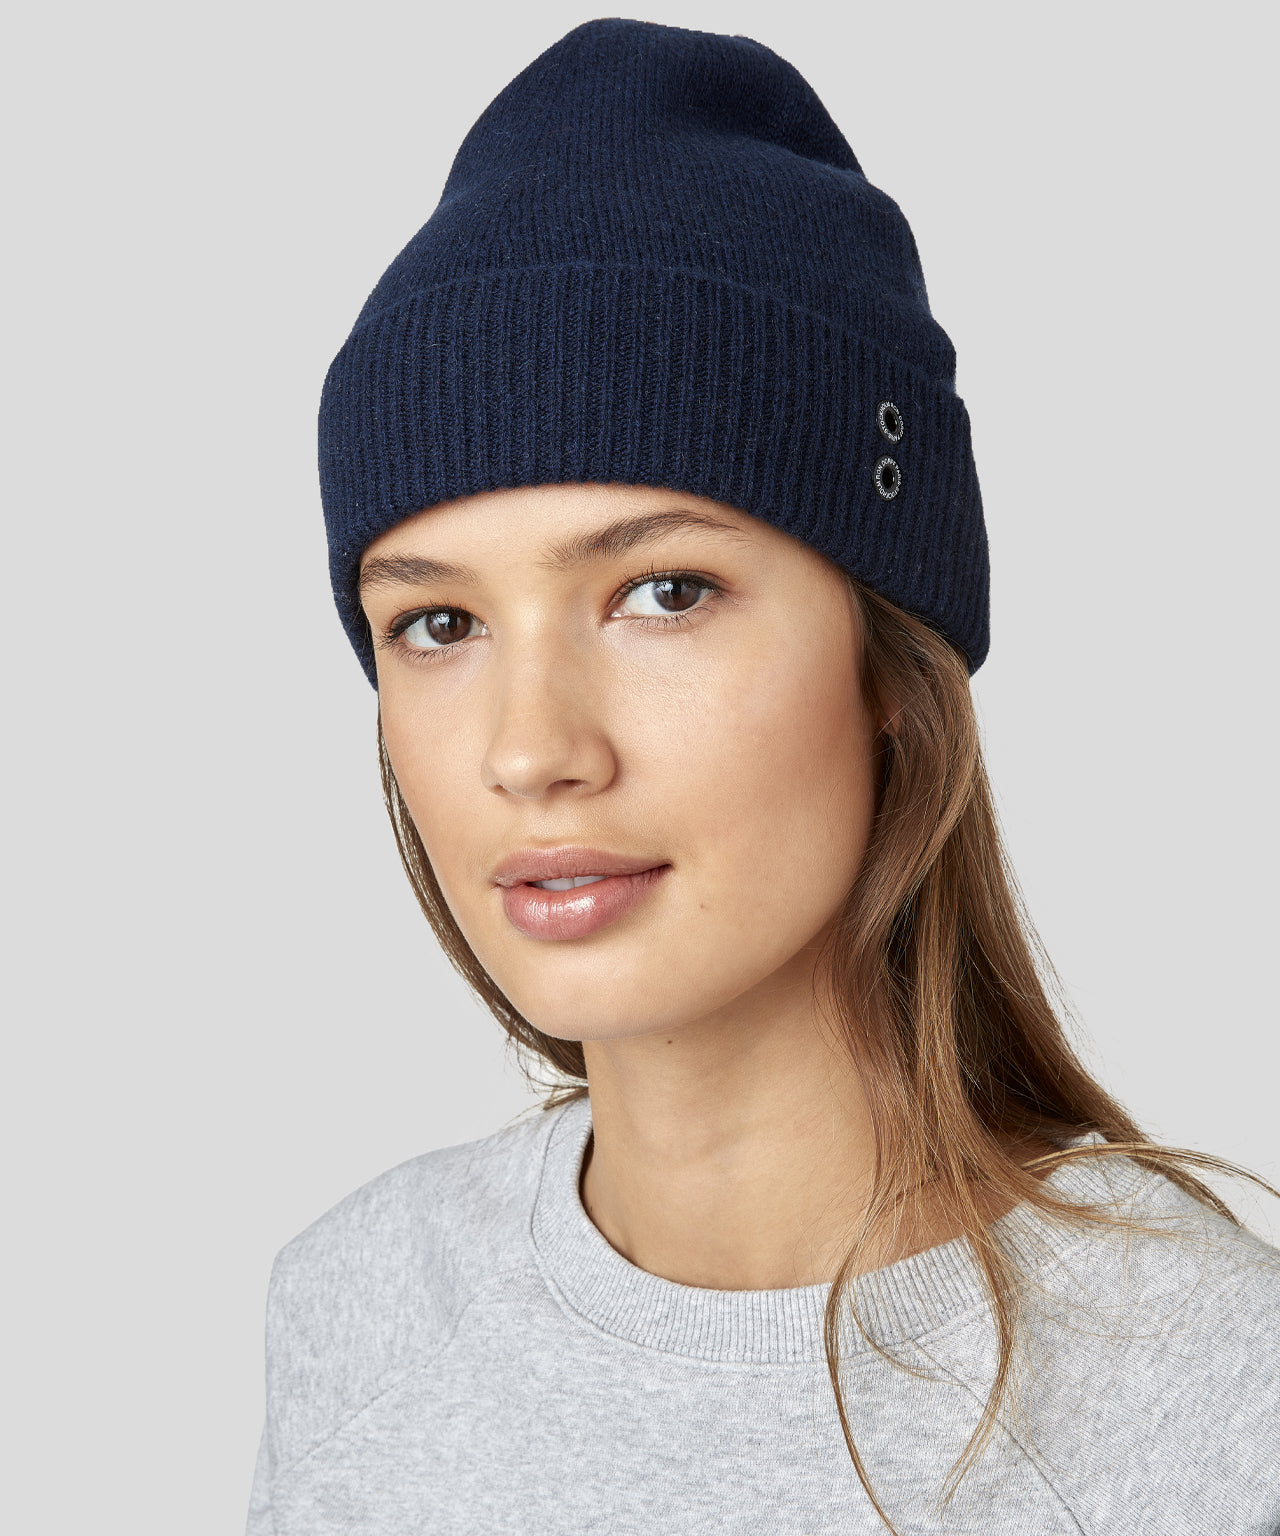 Cashmere Beanie His For Her - navy